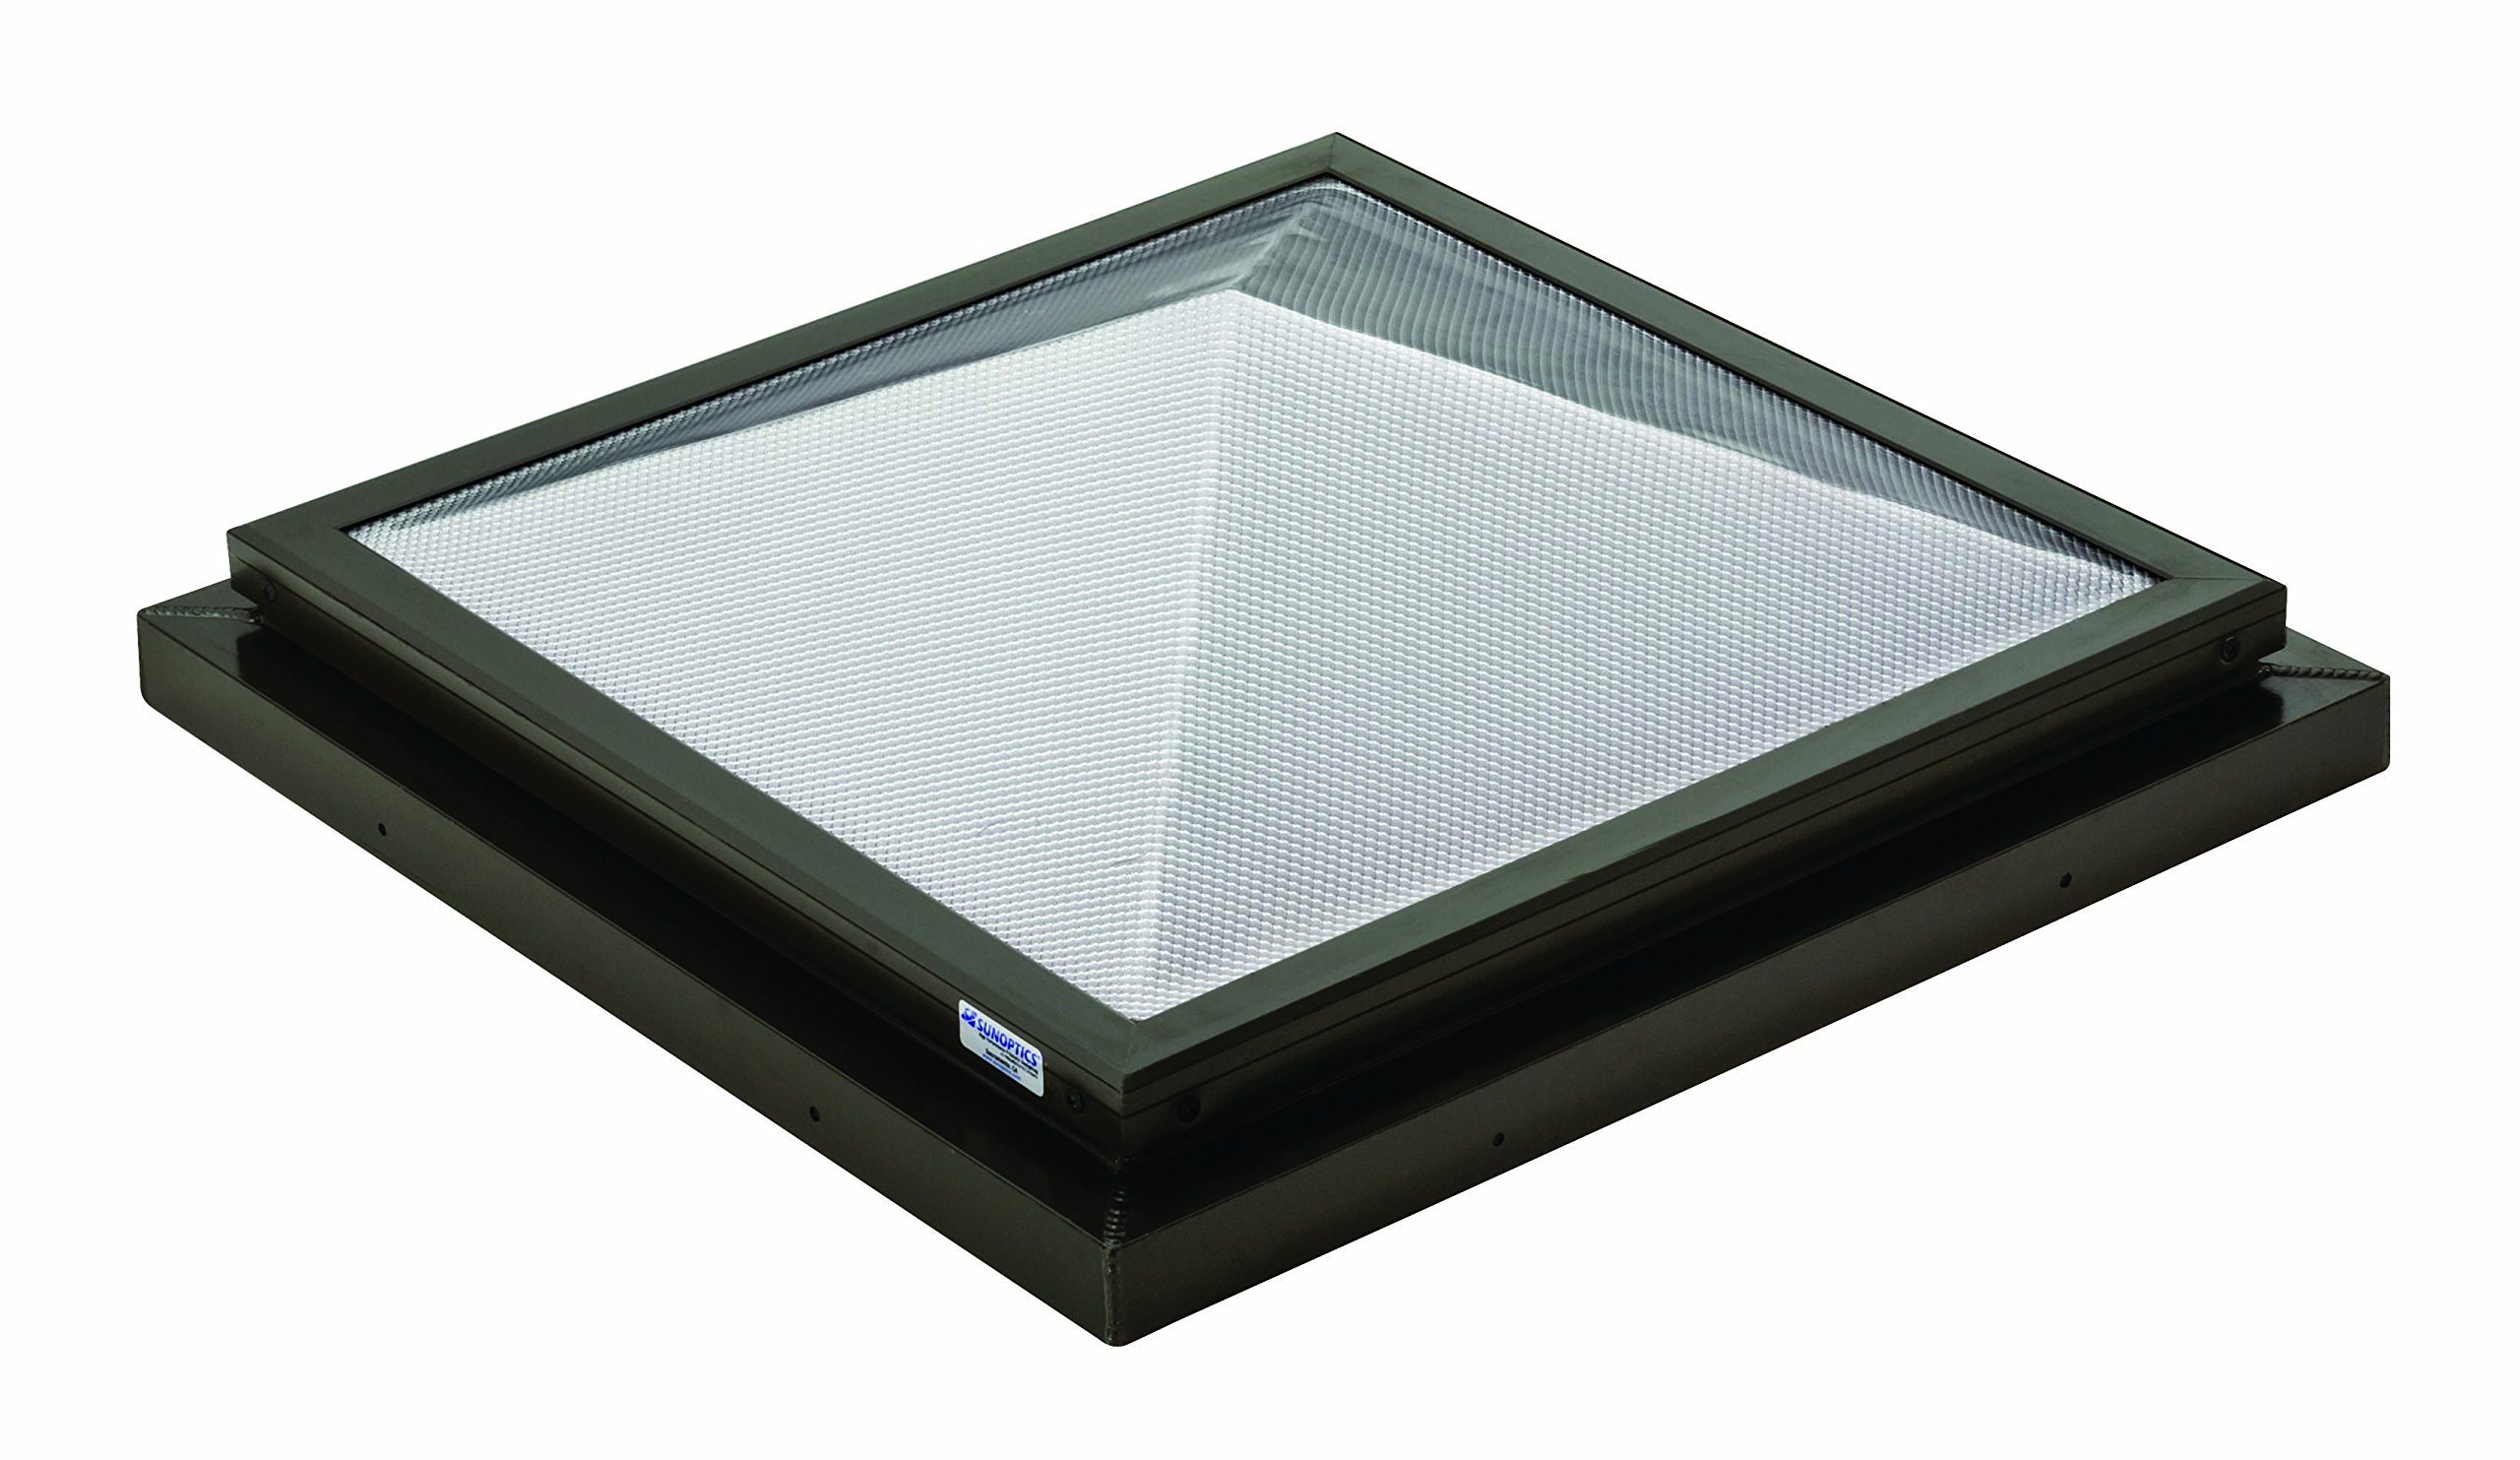 Sunoptics SUN R2020 PYL TGZ 50CC2 800MD BZ  2-Feet by 2-Feet Triple Glazed Fixed Curb-Mounted Prismatic Pyramid Skylight, Bronze